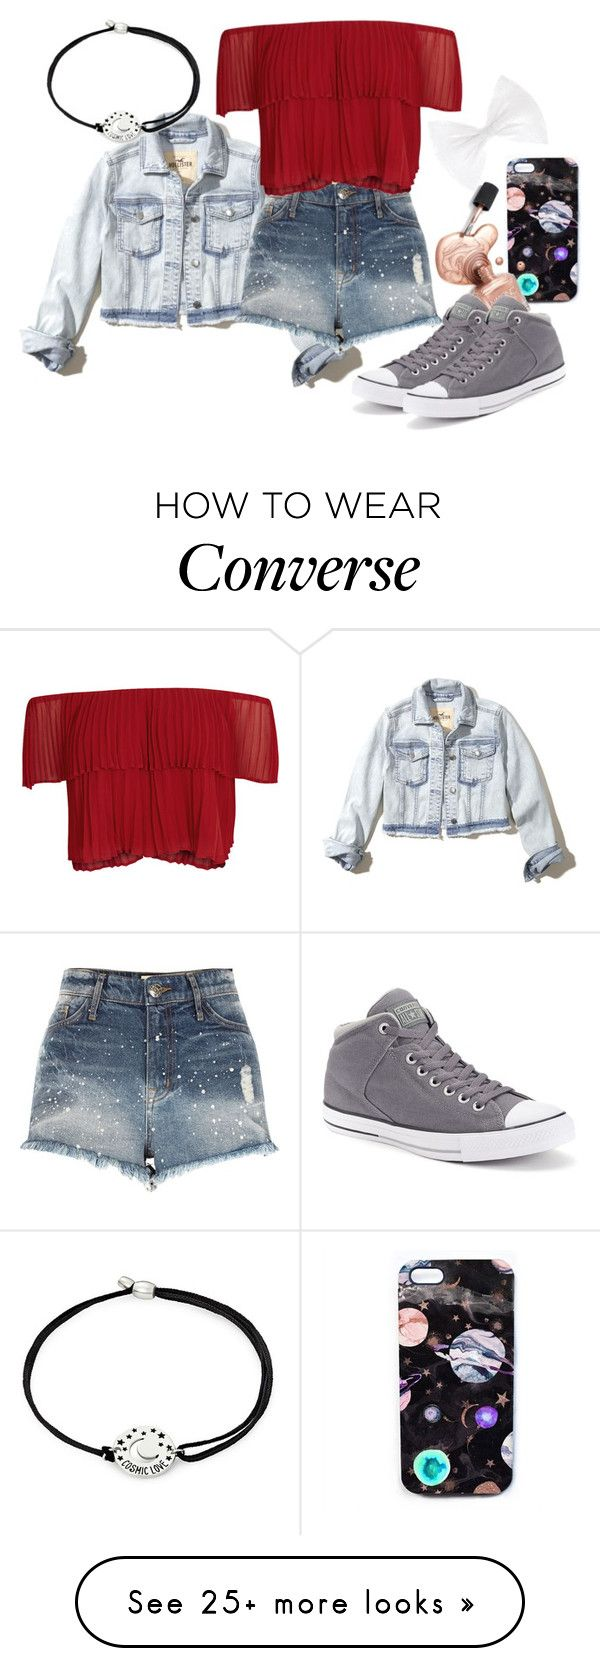 """Demigod Daughter Of Night"" by cfull on Polyvore featuring Hollister Co., River Island, Keepsake the Label, Alex and Ani, Nikki Strange and Converse"